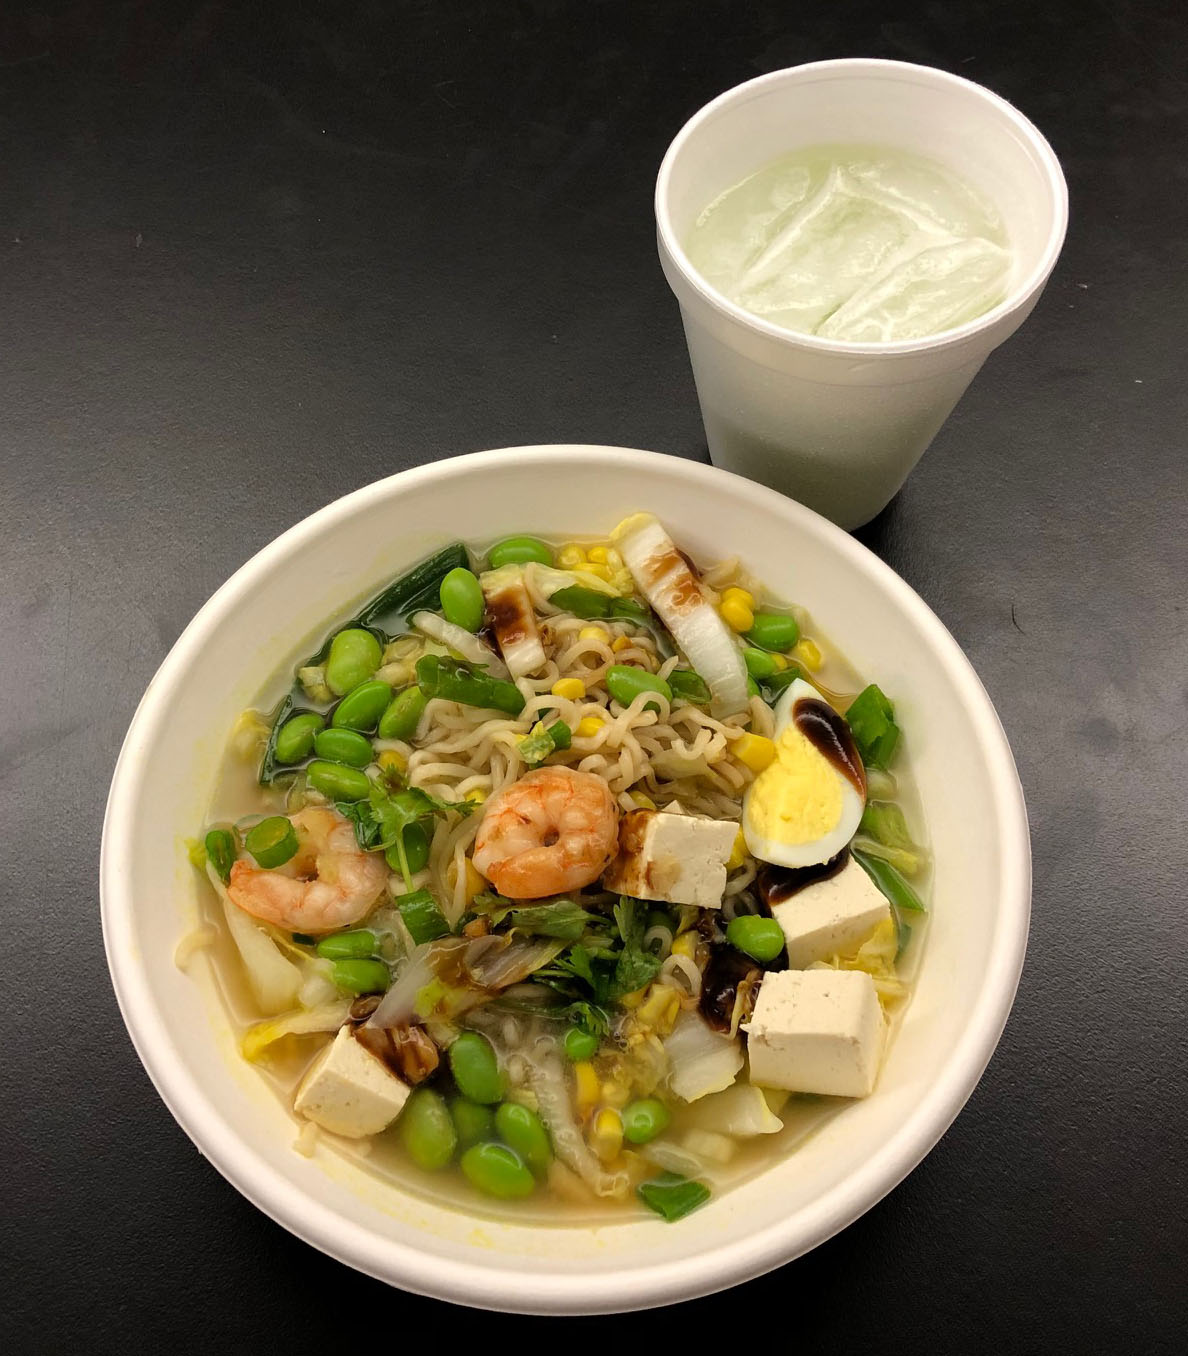 The chefs showed students how to create a healthy ramen dish by using inexpensive ramen packages from the grocery store. Instead of adding the seasoning packet, students used broth and added vegetables and protein.